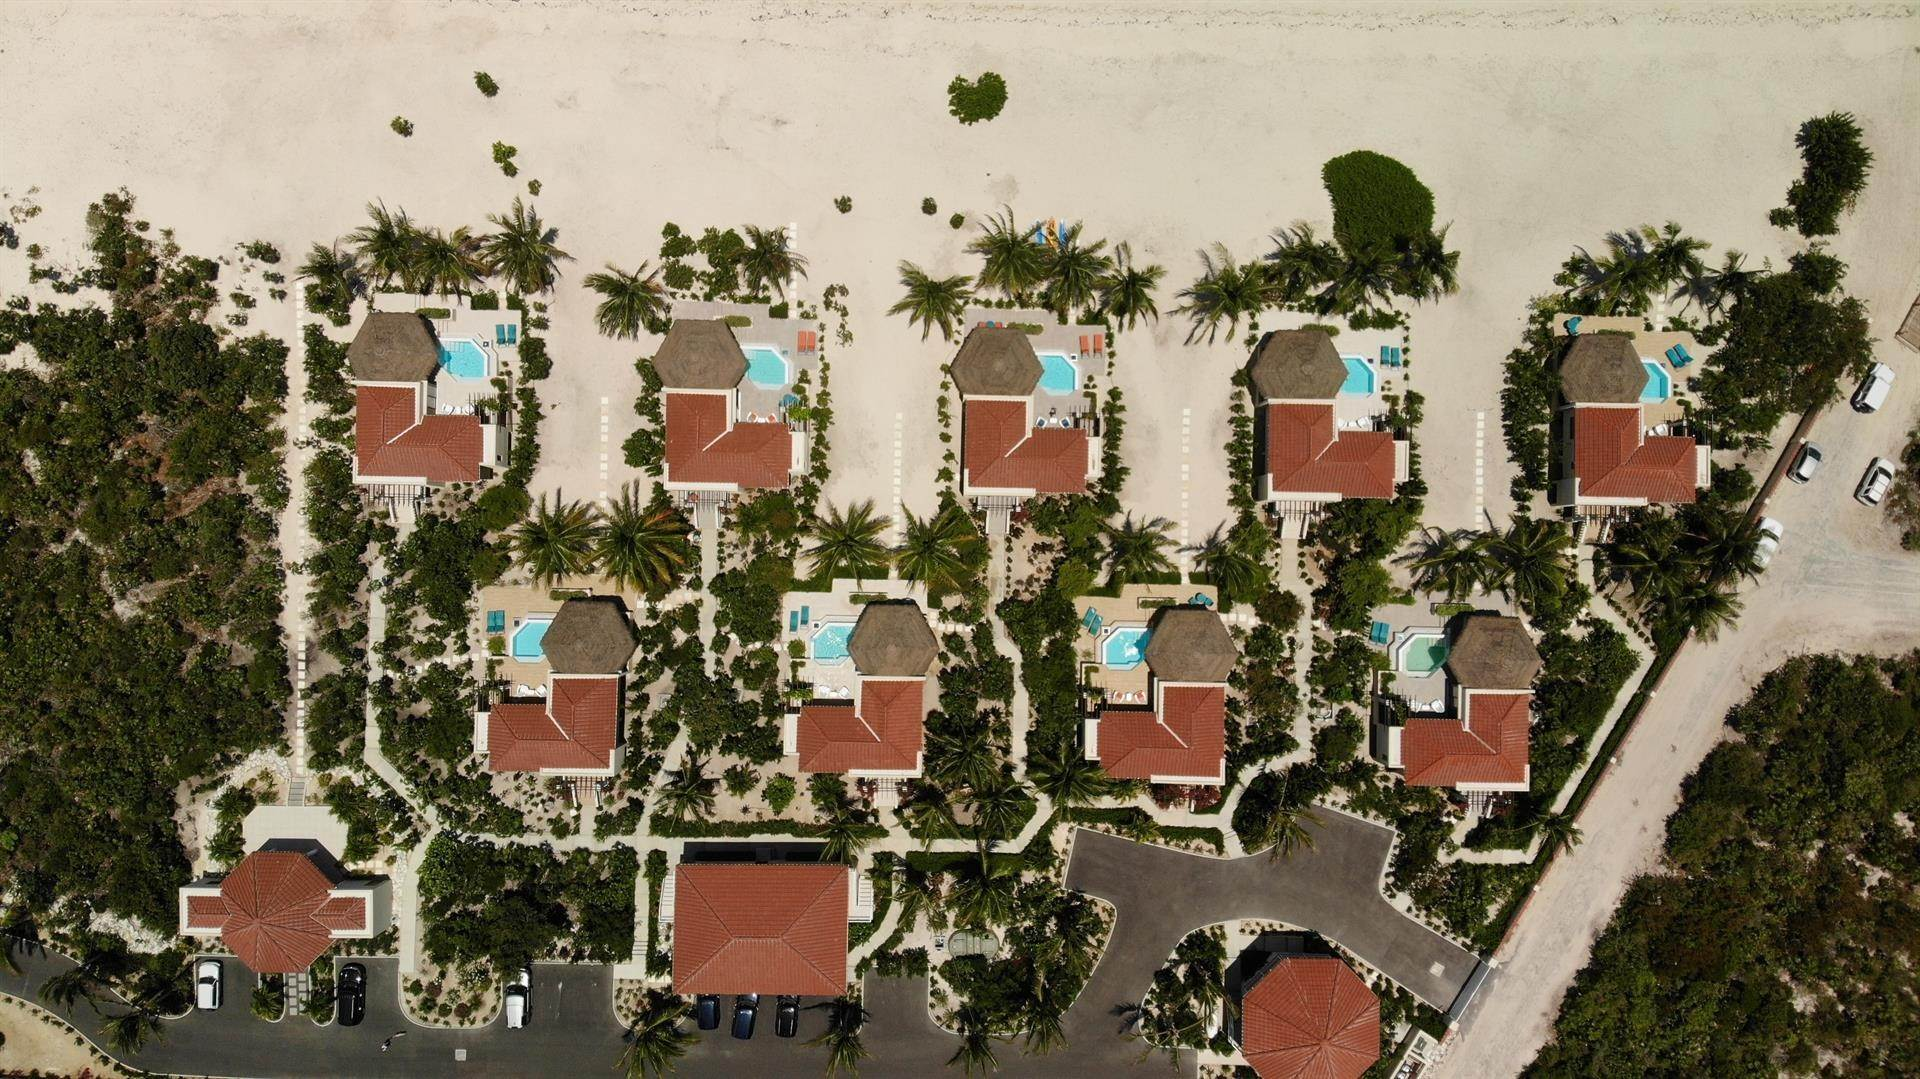 Villa/Townhouse for Sale at Swaying Palms Long Bay, Providenciales,B.W.I Turks And Caicos Islands